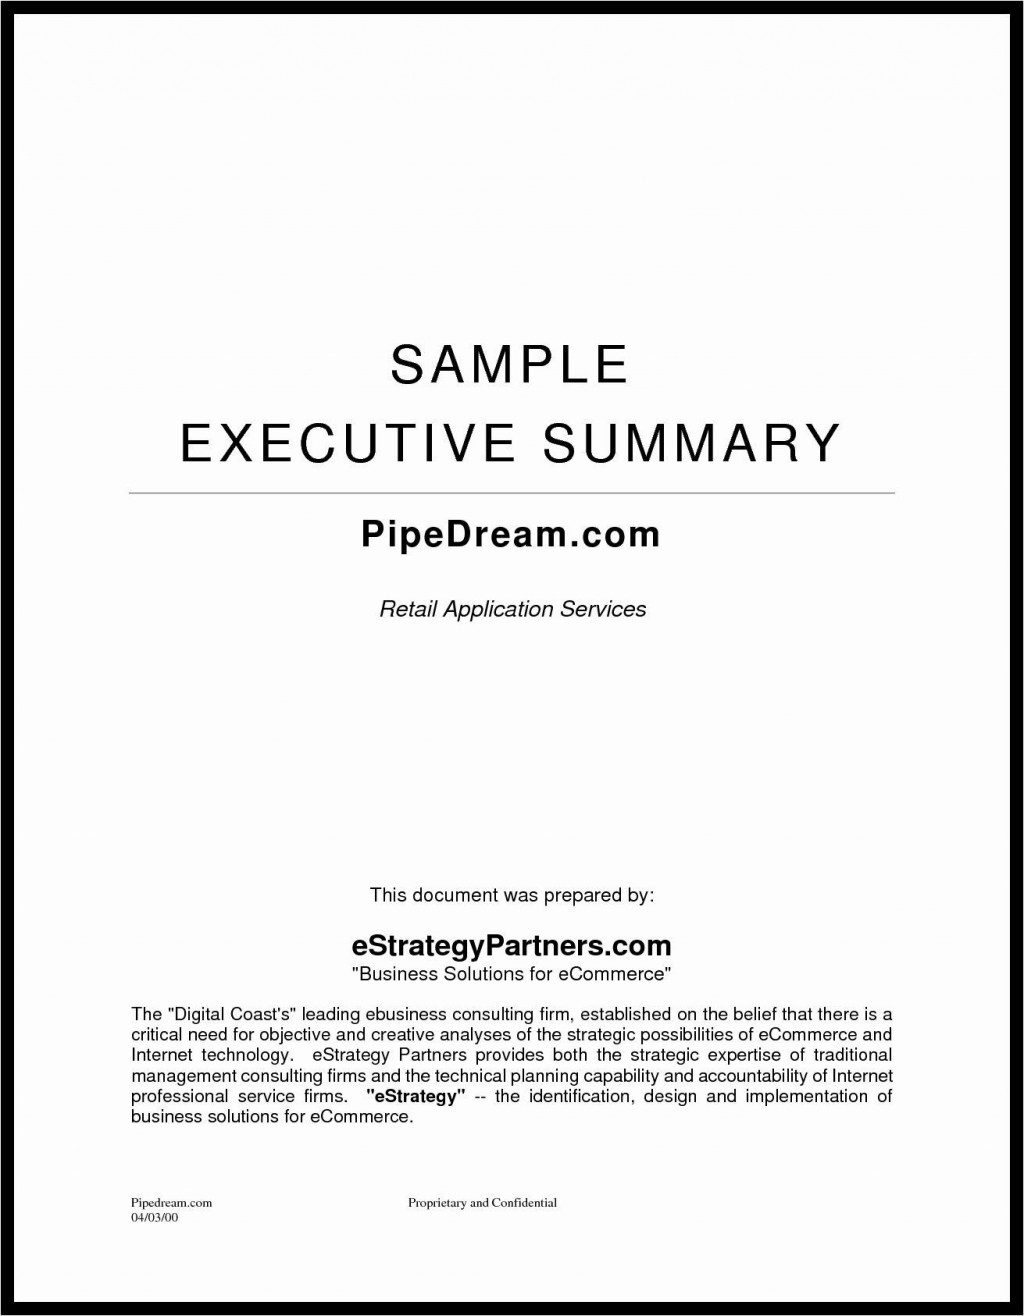 007 Remarkable Executive Summary Template Word Free Inspiration Large